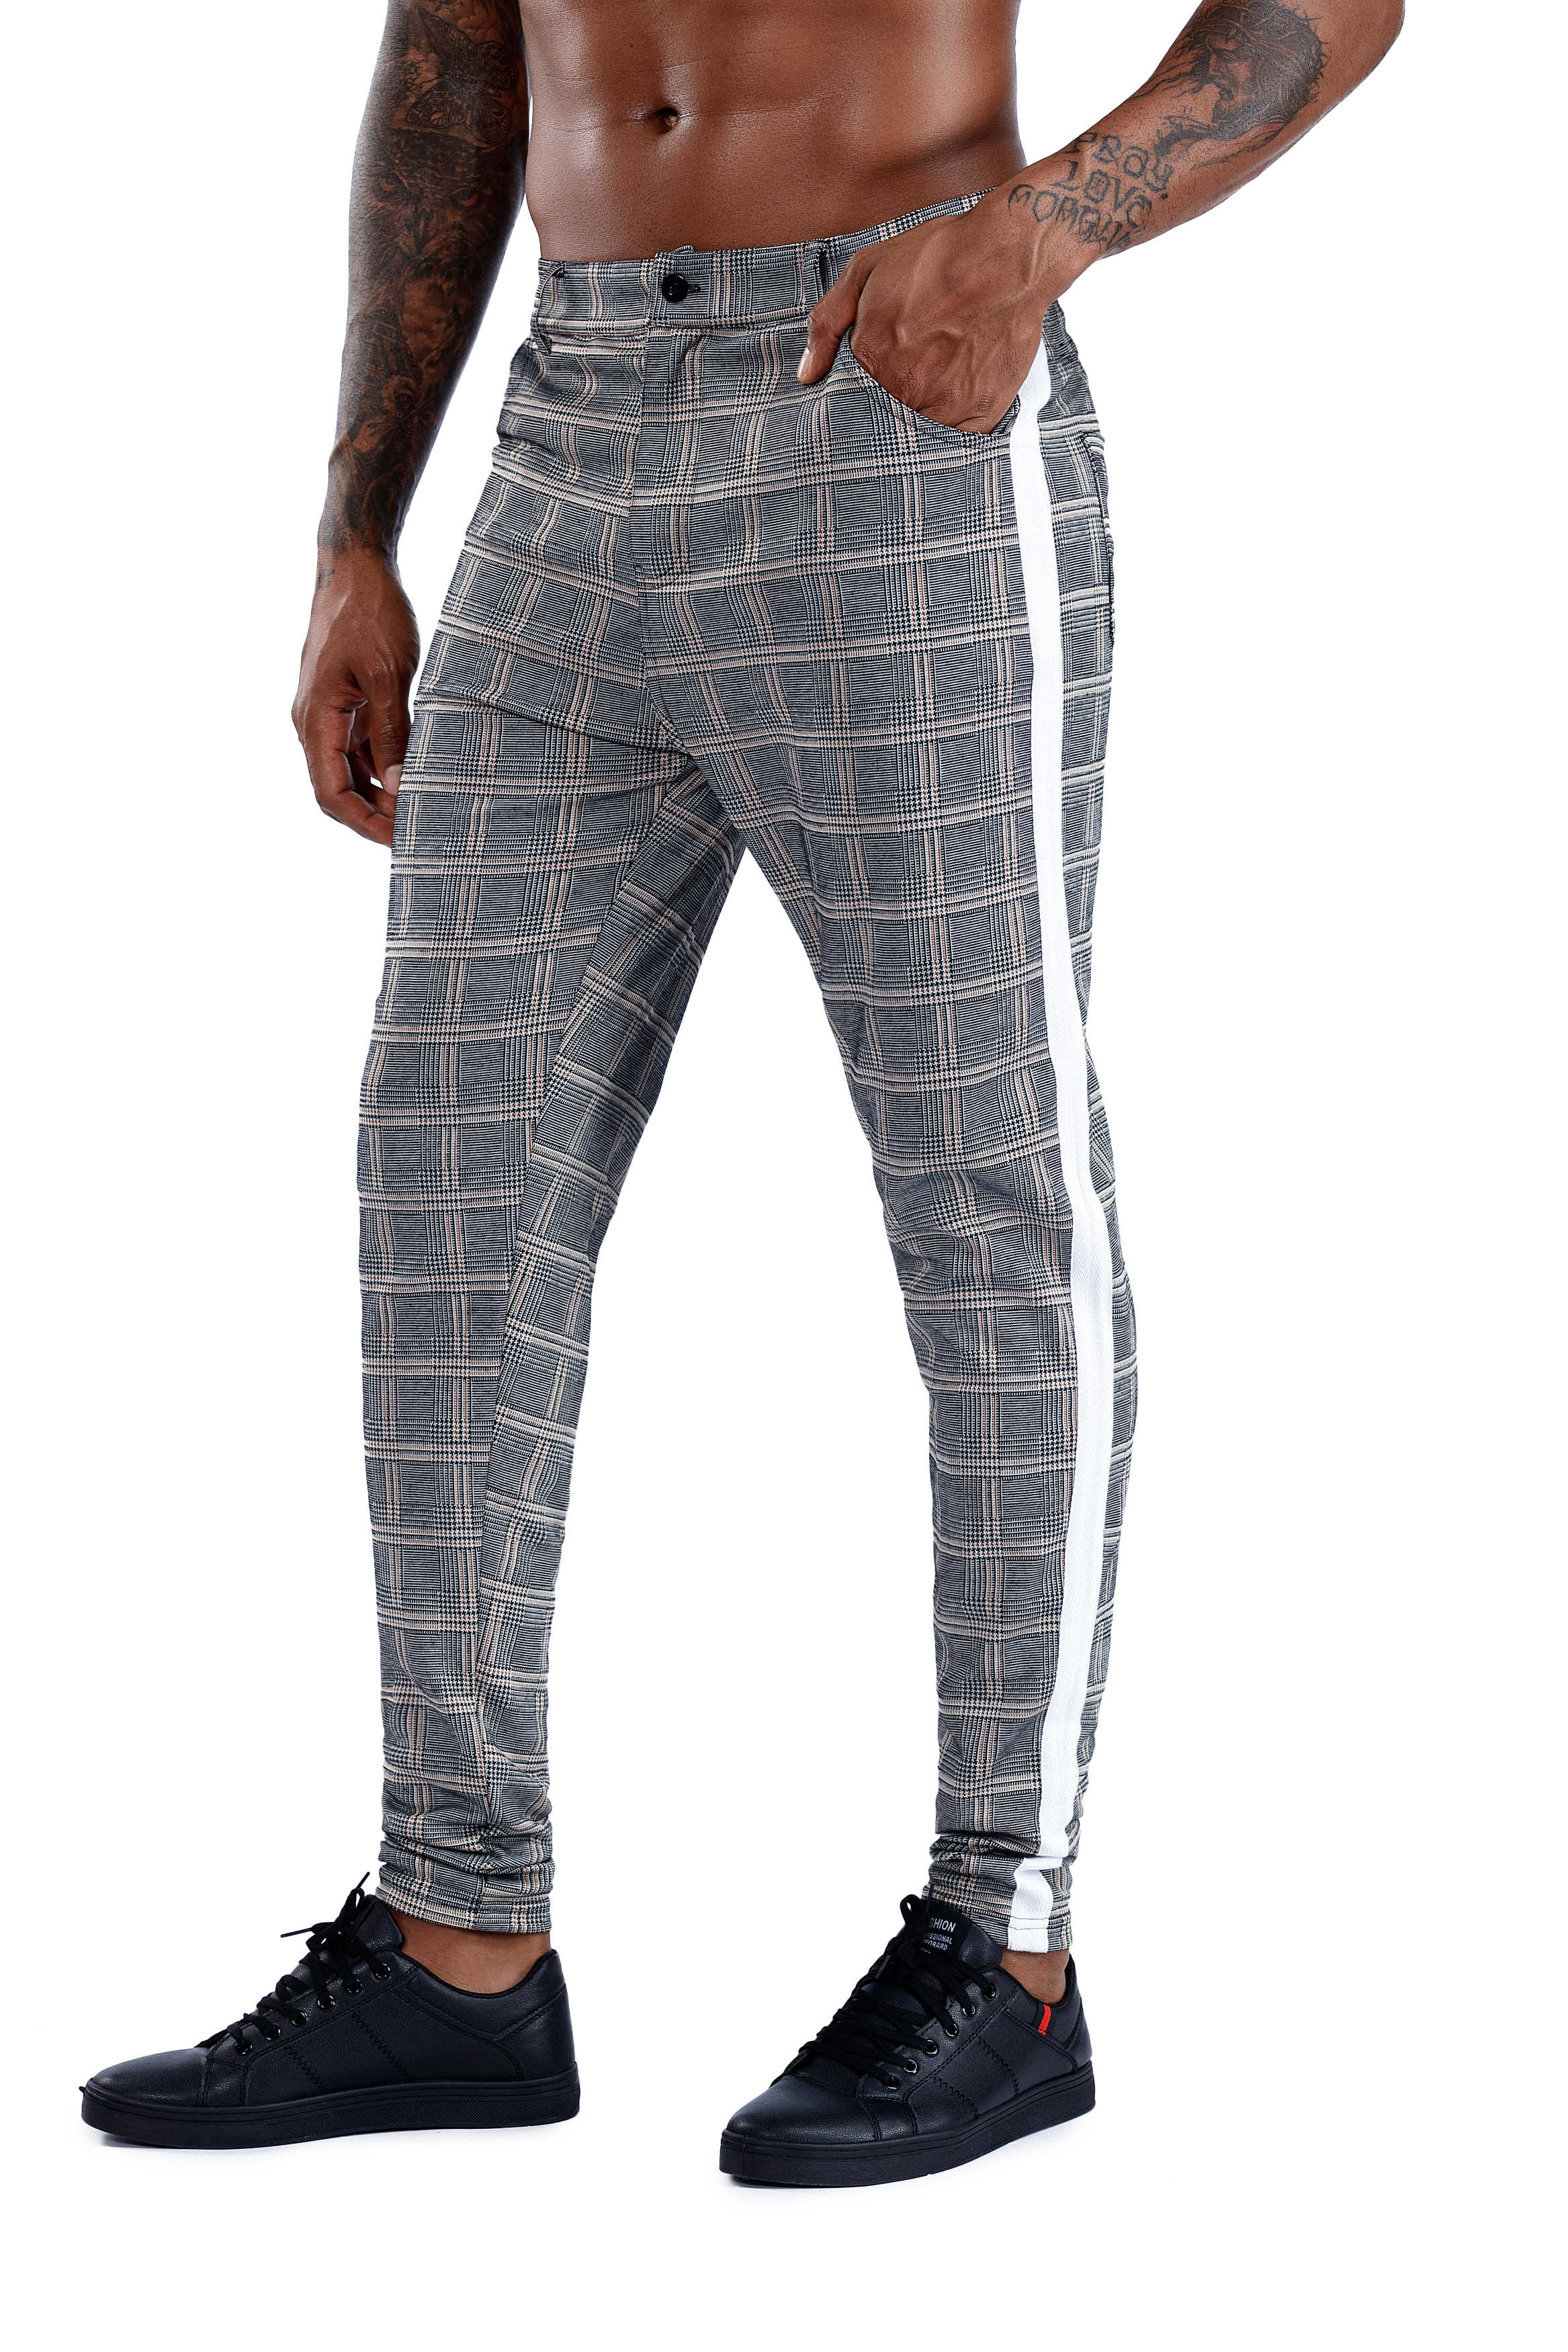 2019 Mens Casual Pant Skinny Plaid Trousers Men Fashion Gentleman Streetwear Male Pants Fitness Sweatpant Tight Joggers Men Pant